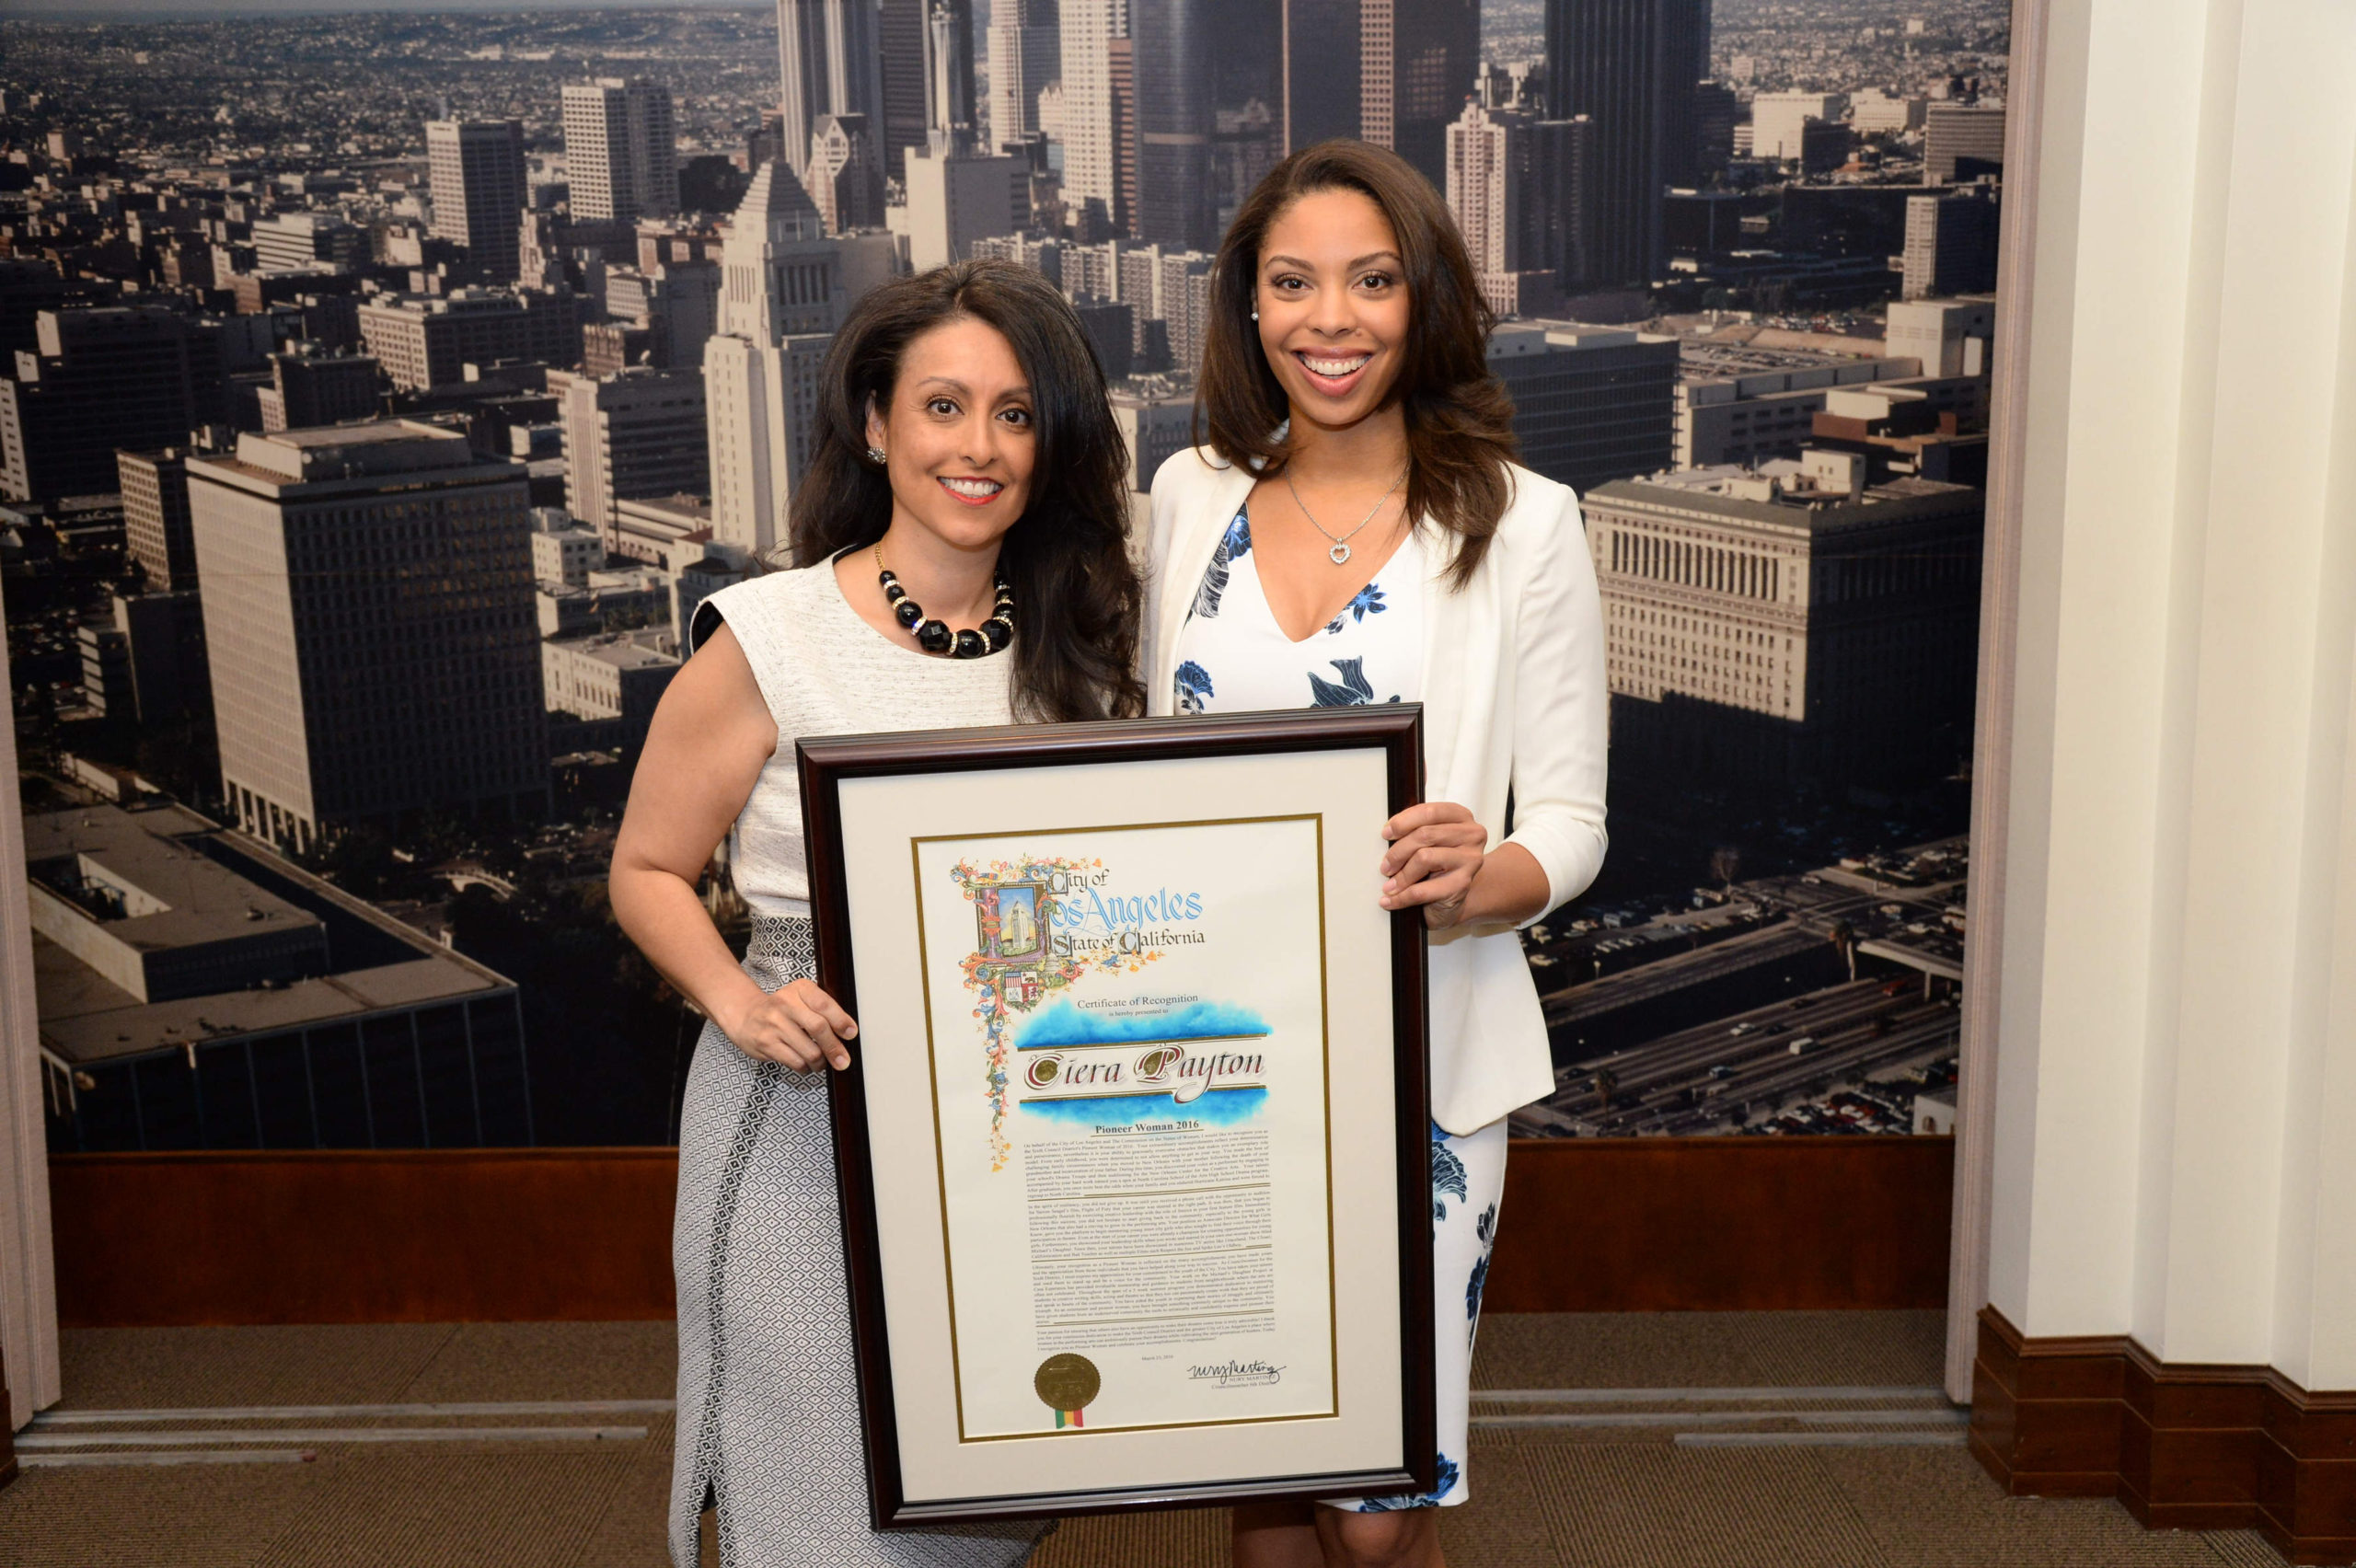 Ciera Payton Receives the 2016 Los Angeles Pioneer Award